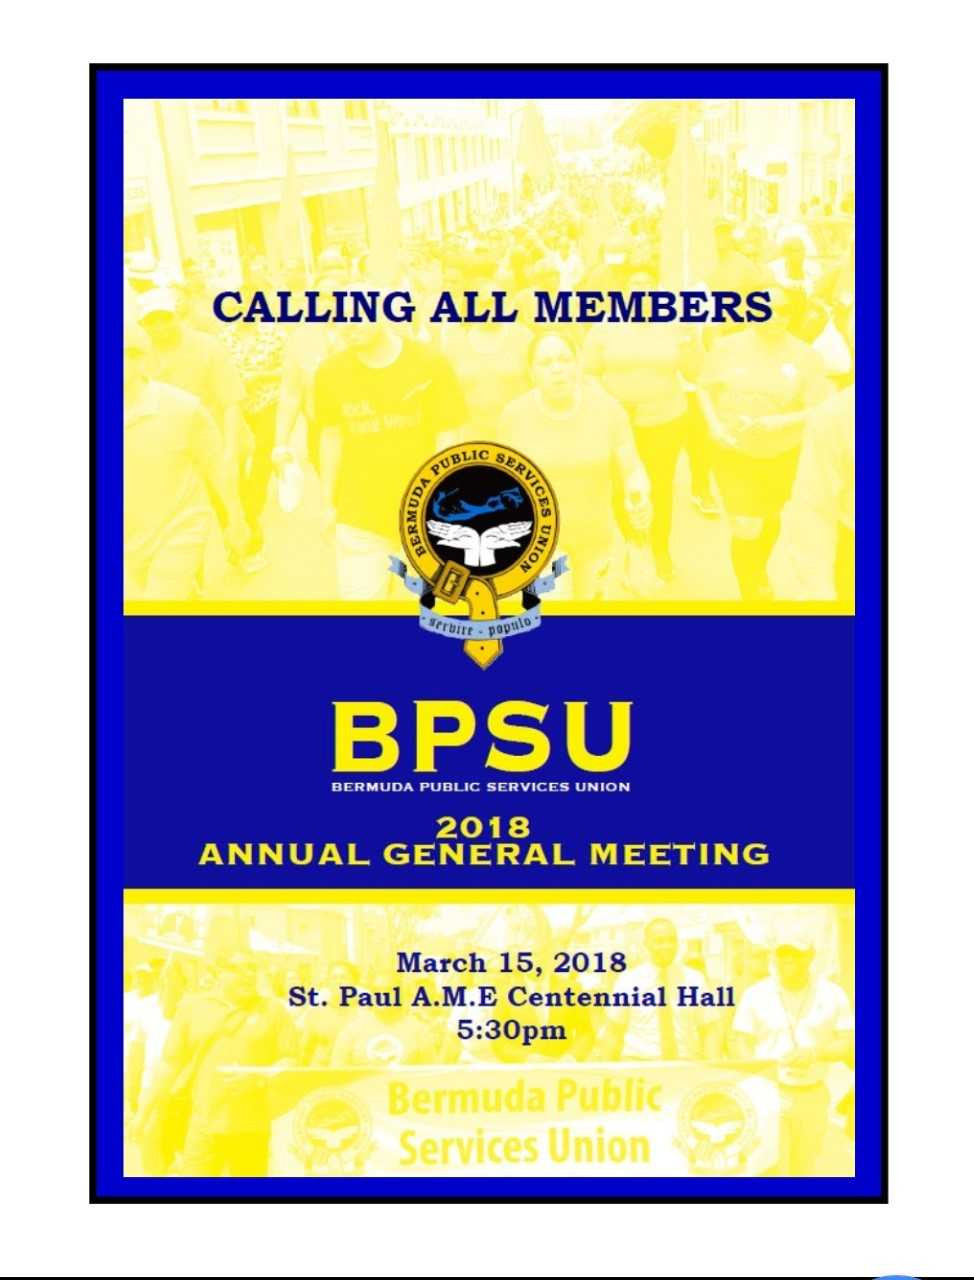 This is the opportunity for all members to come out and hear what their Union has been doing for the past year.  It also allows members to help shape the path moving forward.